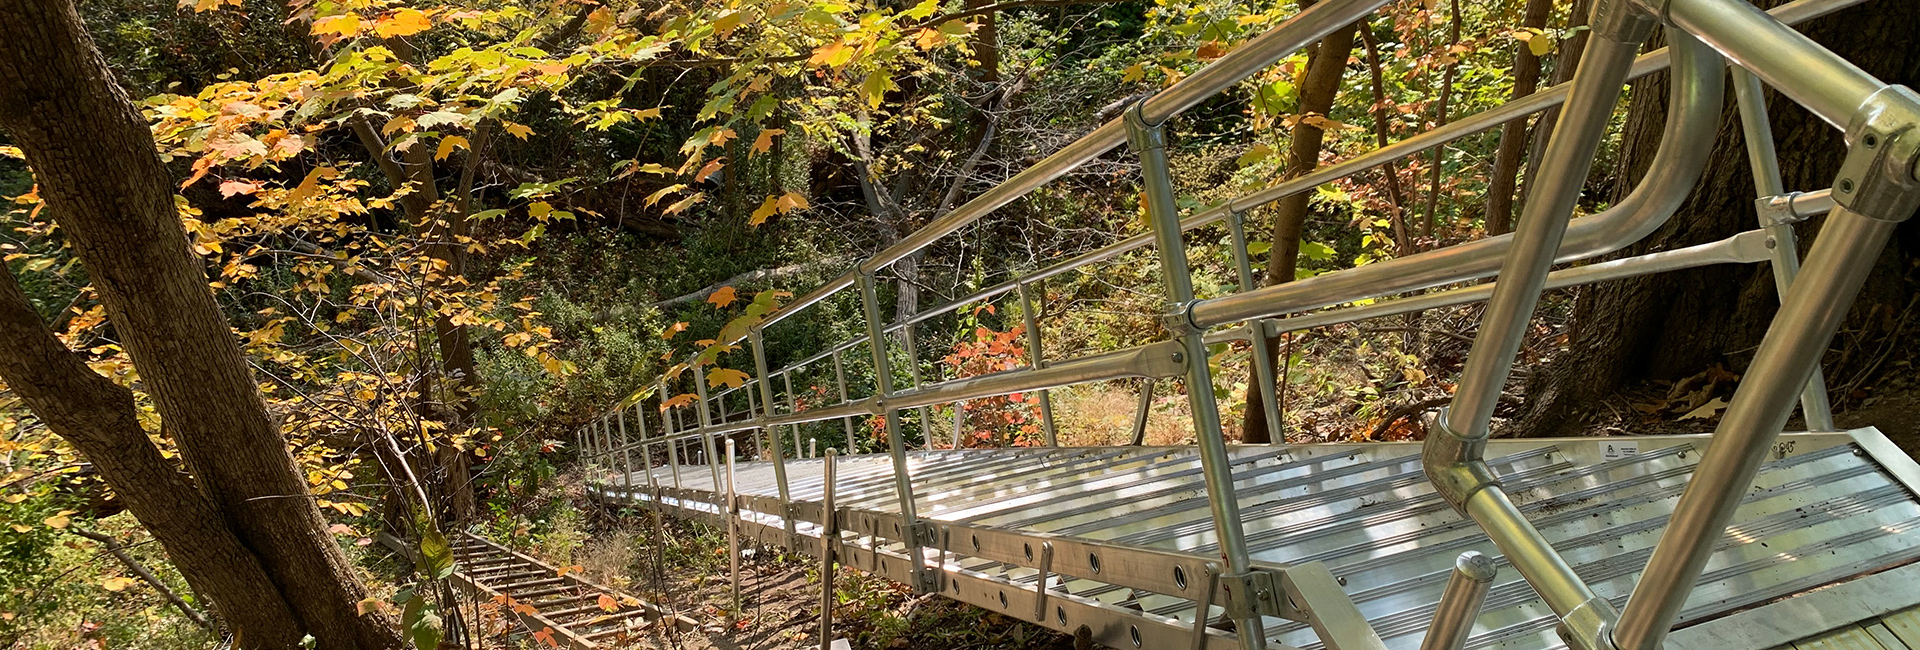 Aluminum Stair Platform with Handrails